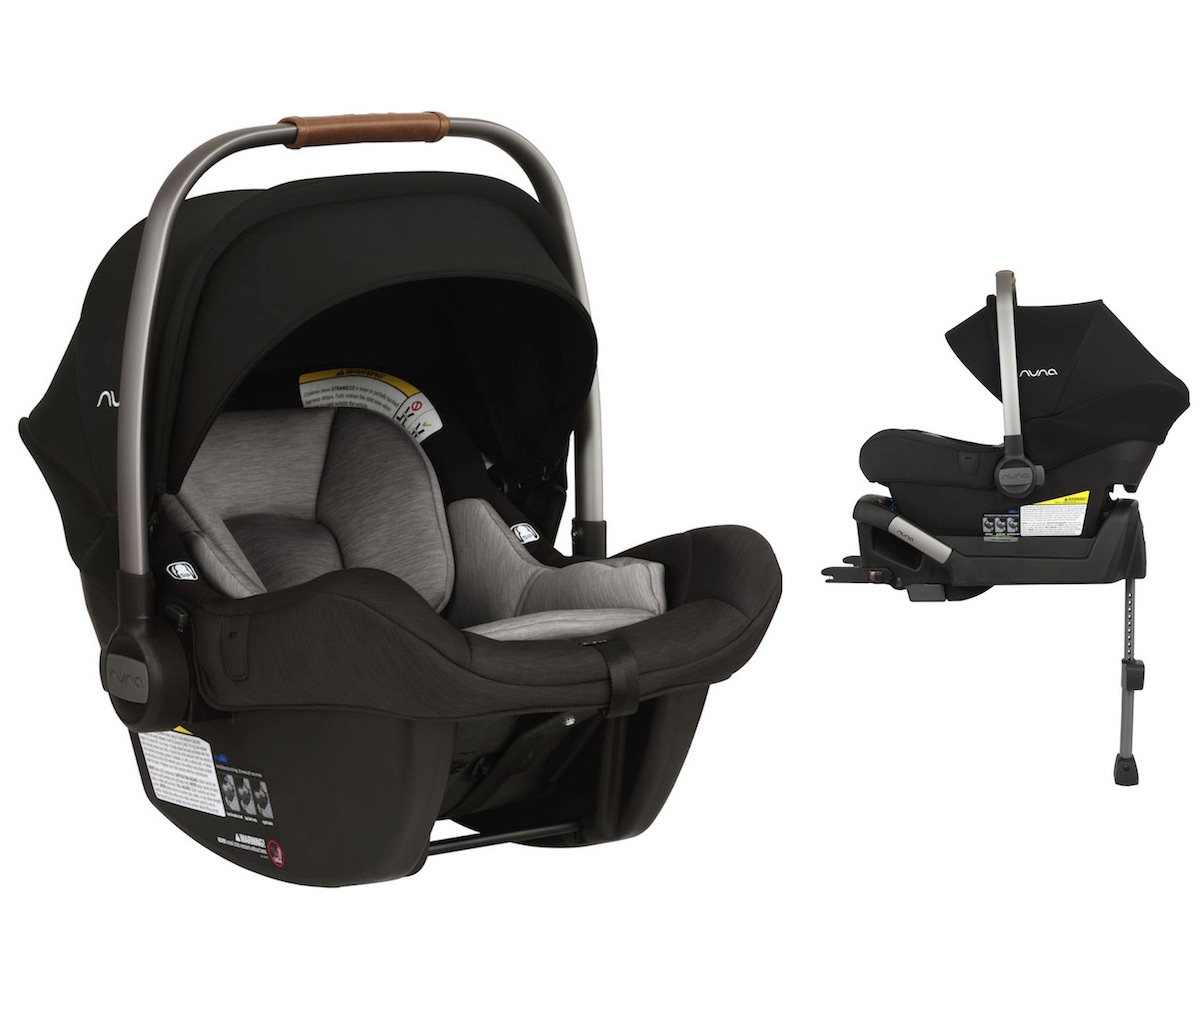 NUNA 2019 Pipa Lite Infant Car Seat + Base in Caviar